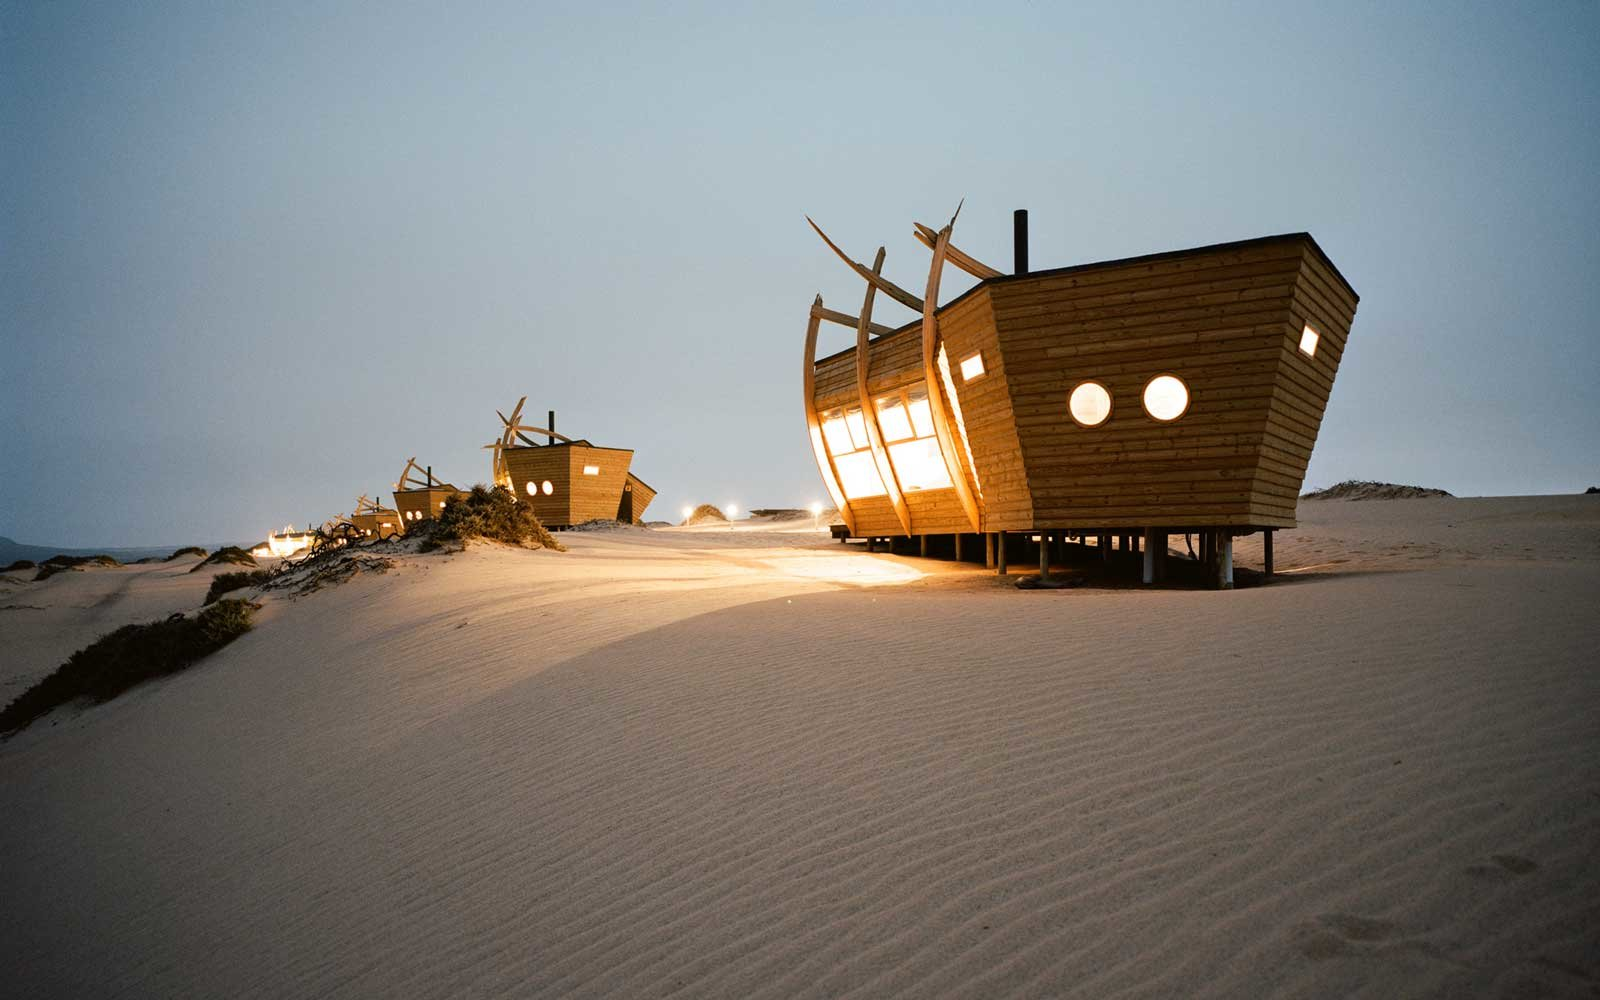 Shipwreck Lodge in Namibia